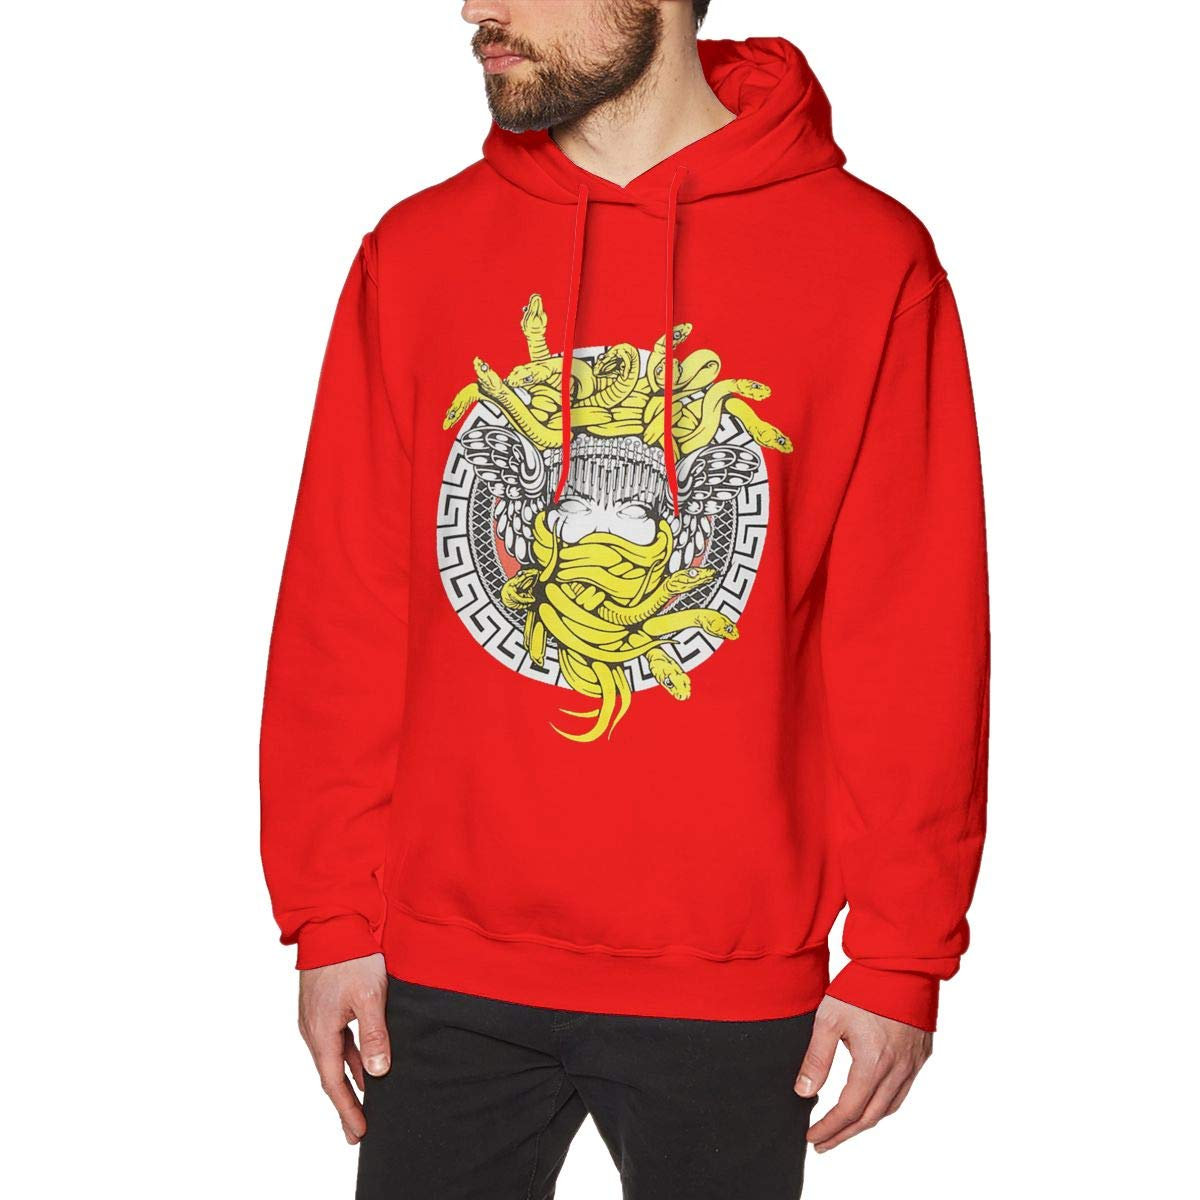 GRaconndeg Mens Crooks and Castles Medusa Classic Red Hoodie Sweatshirt Jacket Pullover Tops